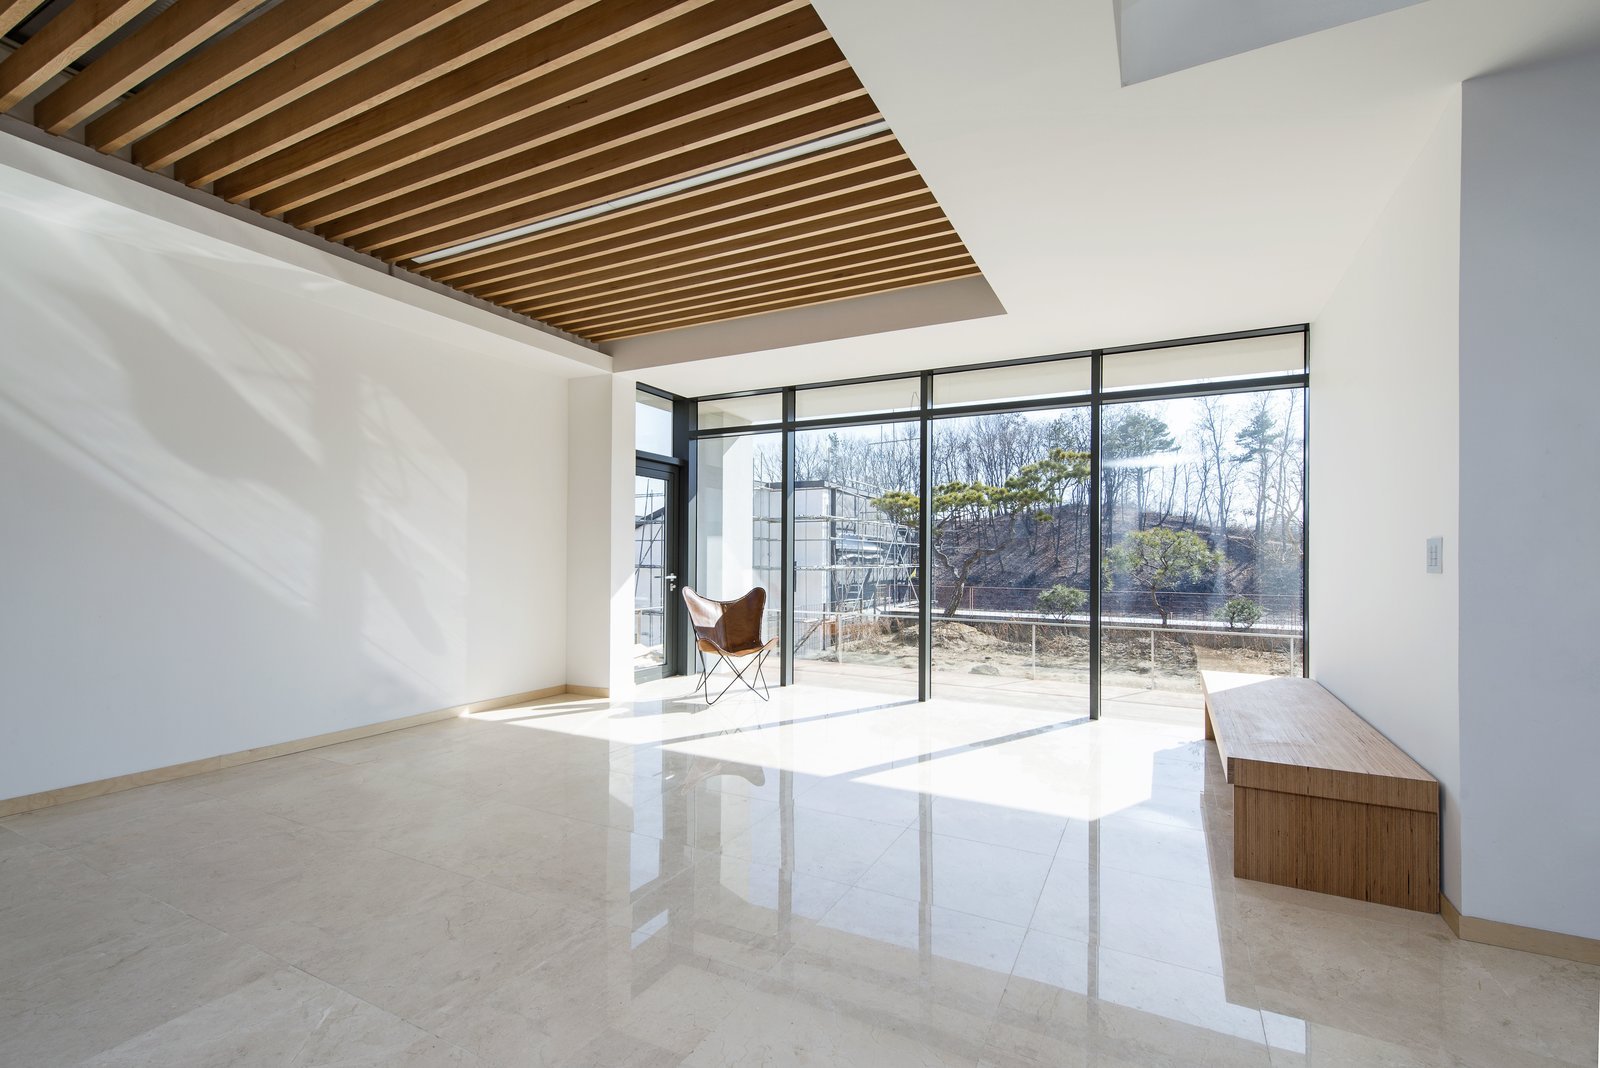 Concrete Patio, Porch, Deck and Outdoor Living Room  A House by Chang Kyu Lee